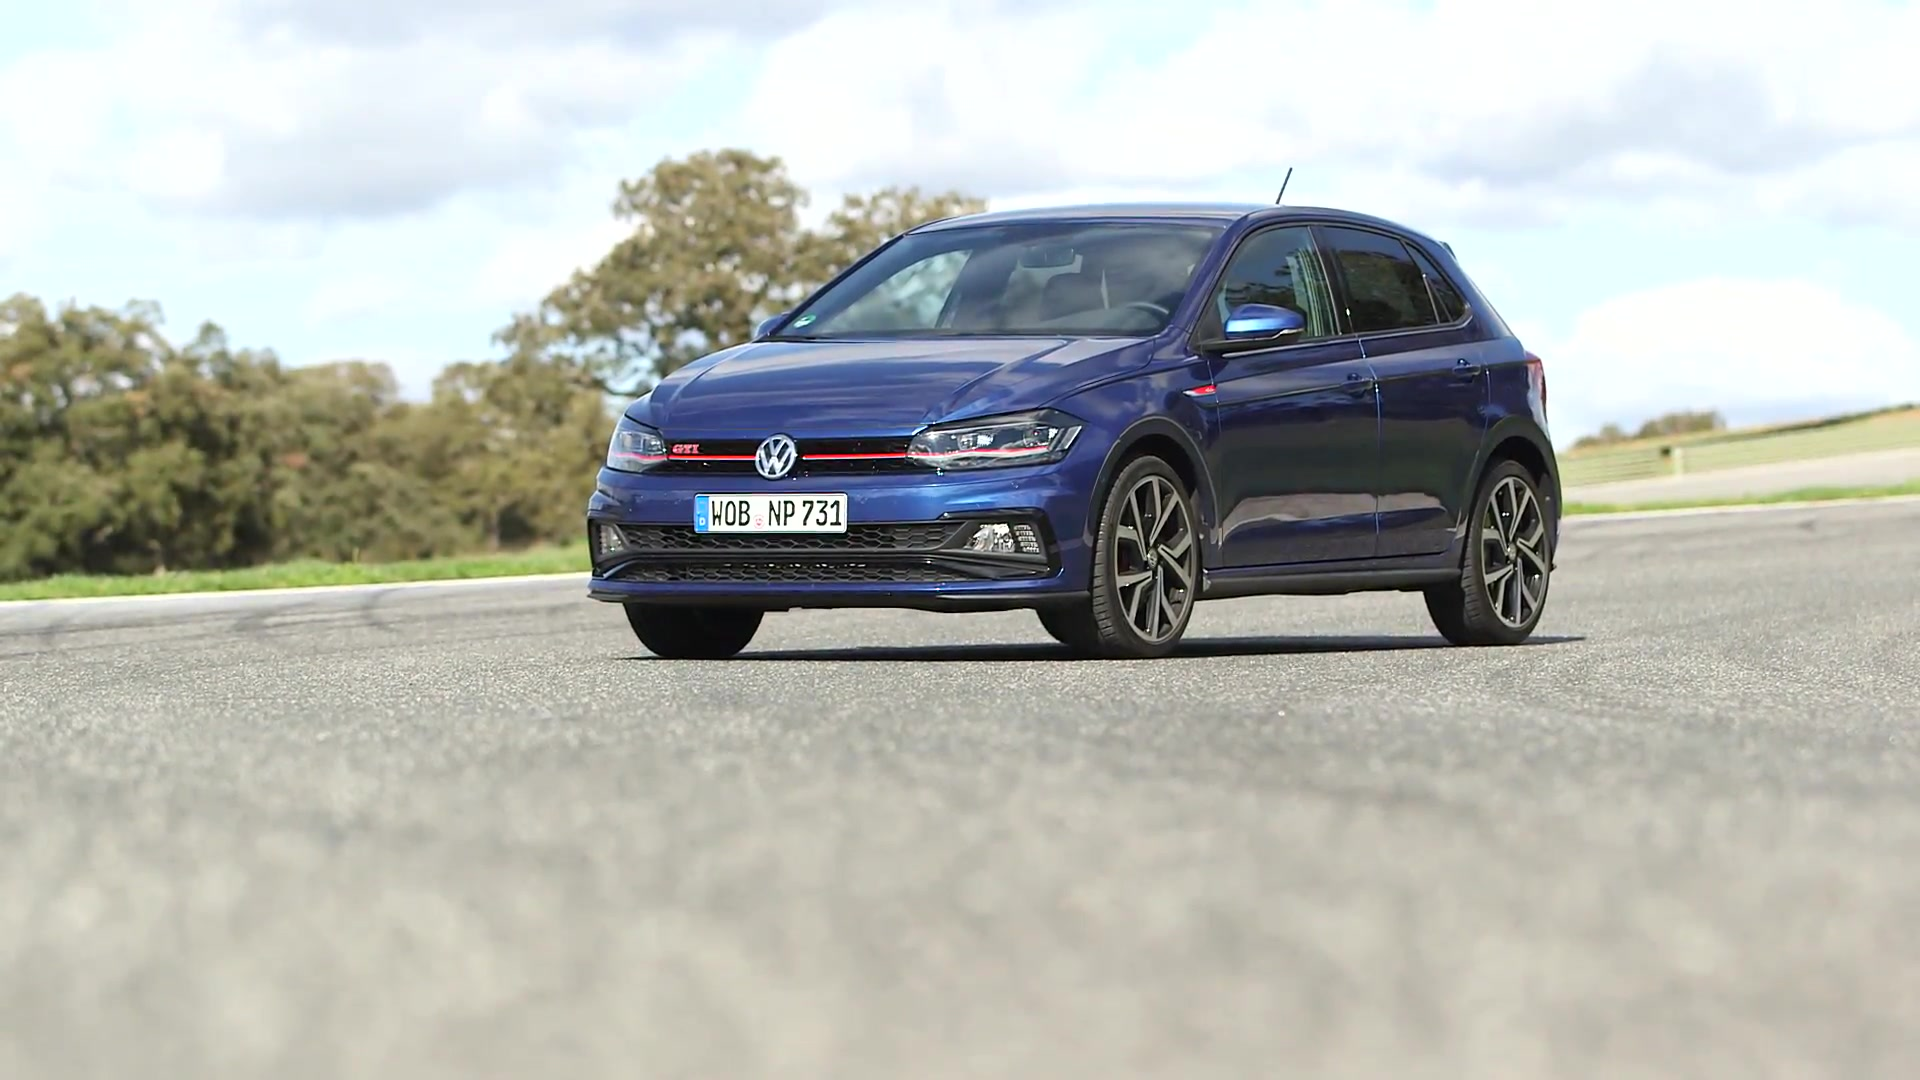 VW Polo GTI Exterior Design – GTI Driving Experience